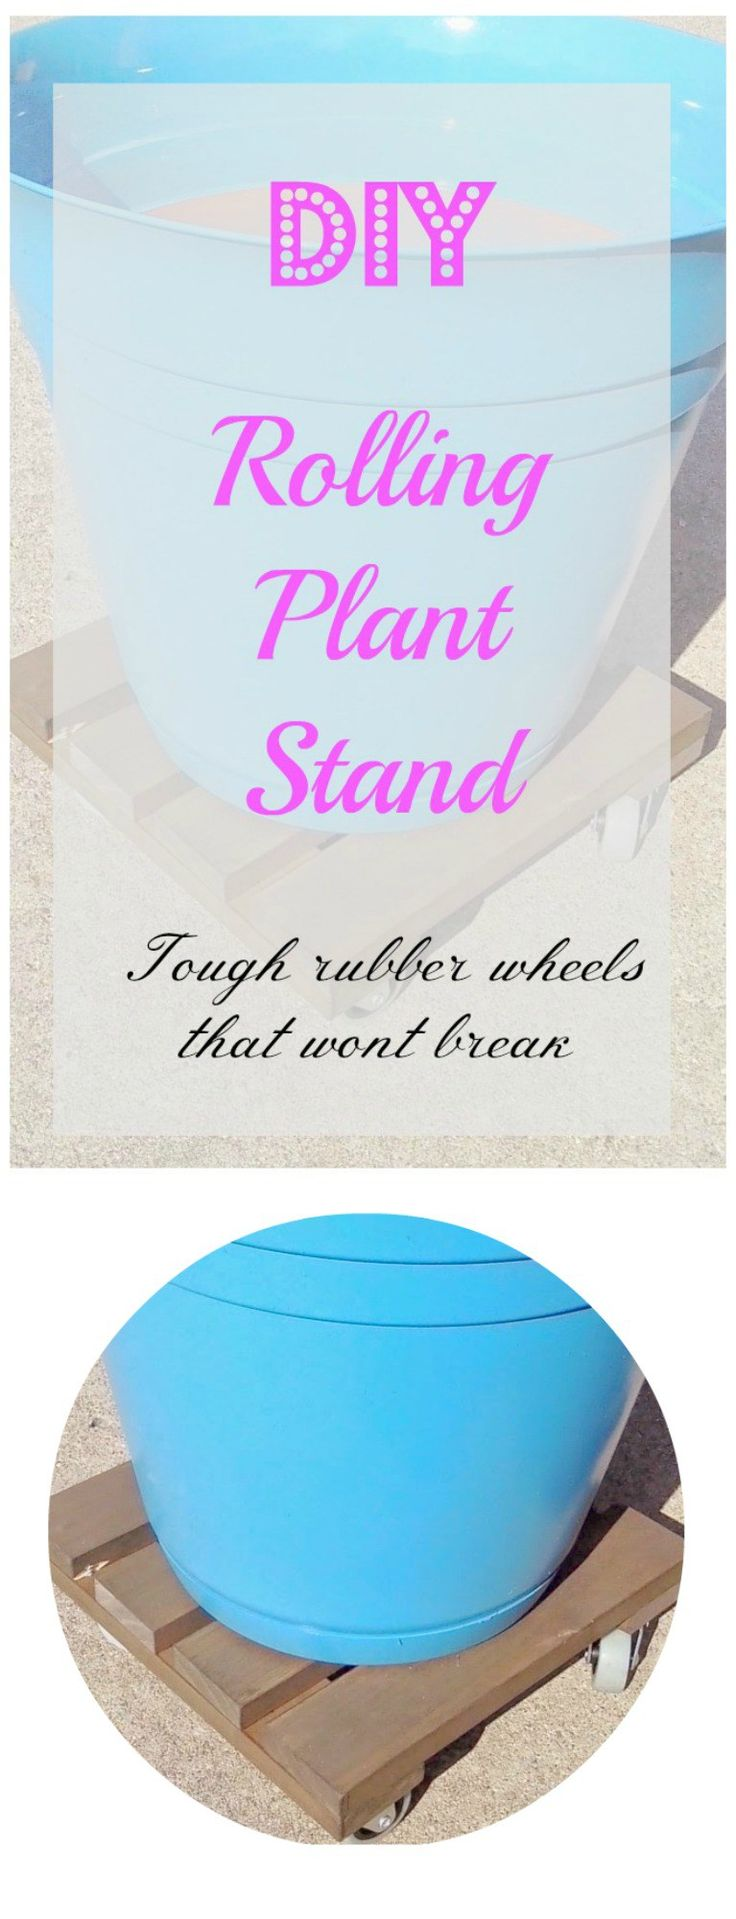 Rolling Plant Stands- A DIY project for everyone!